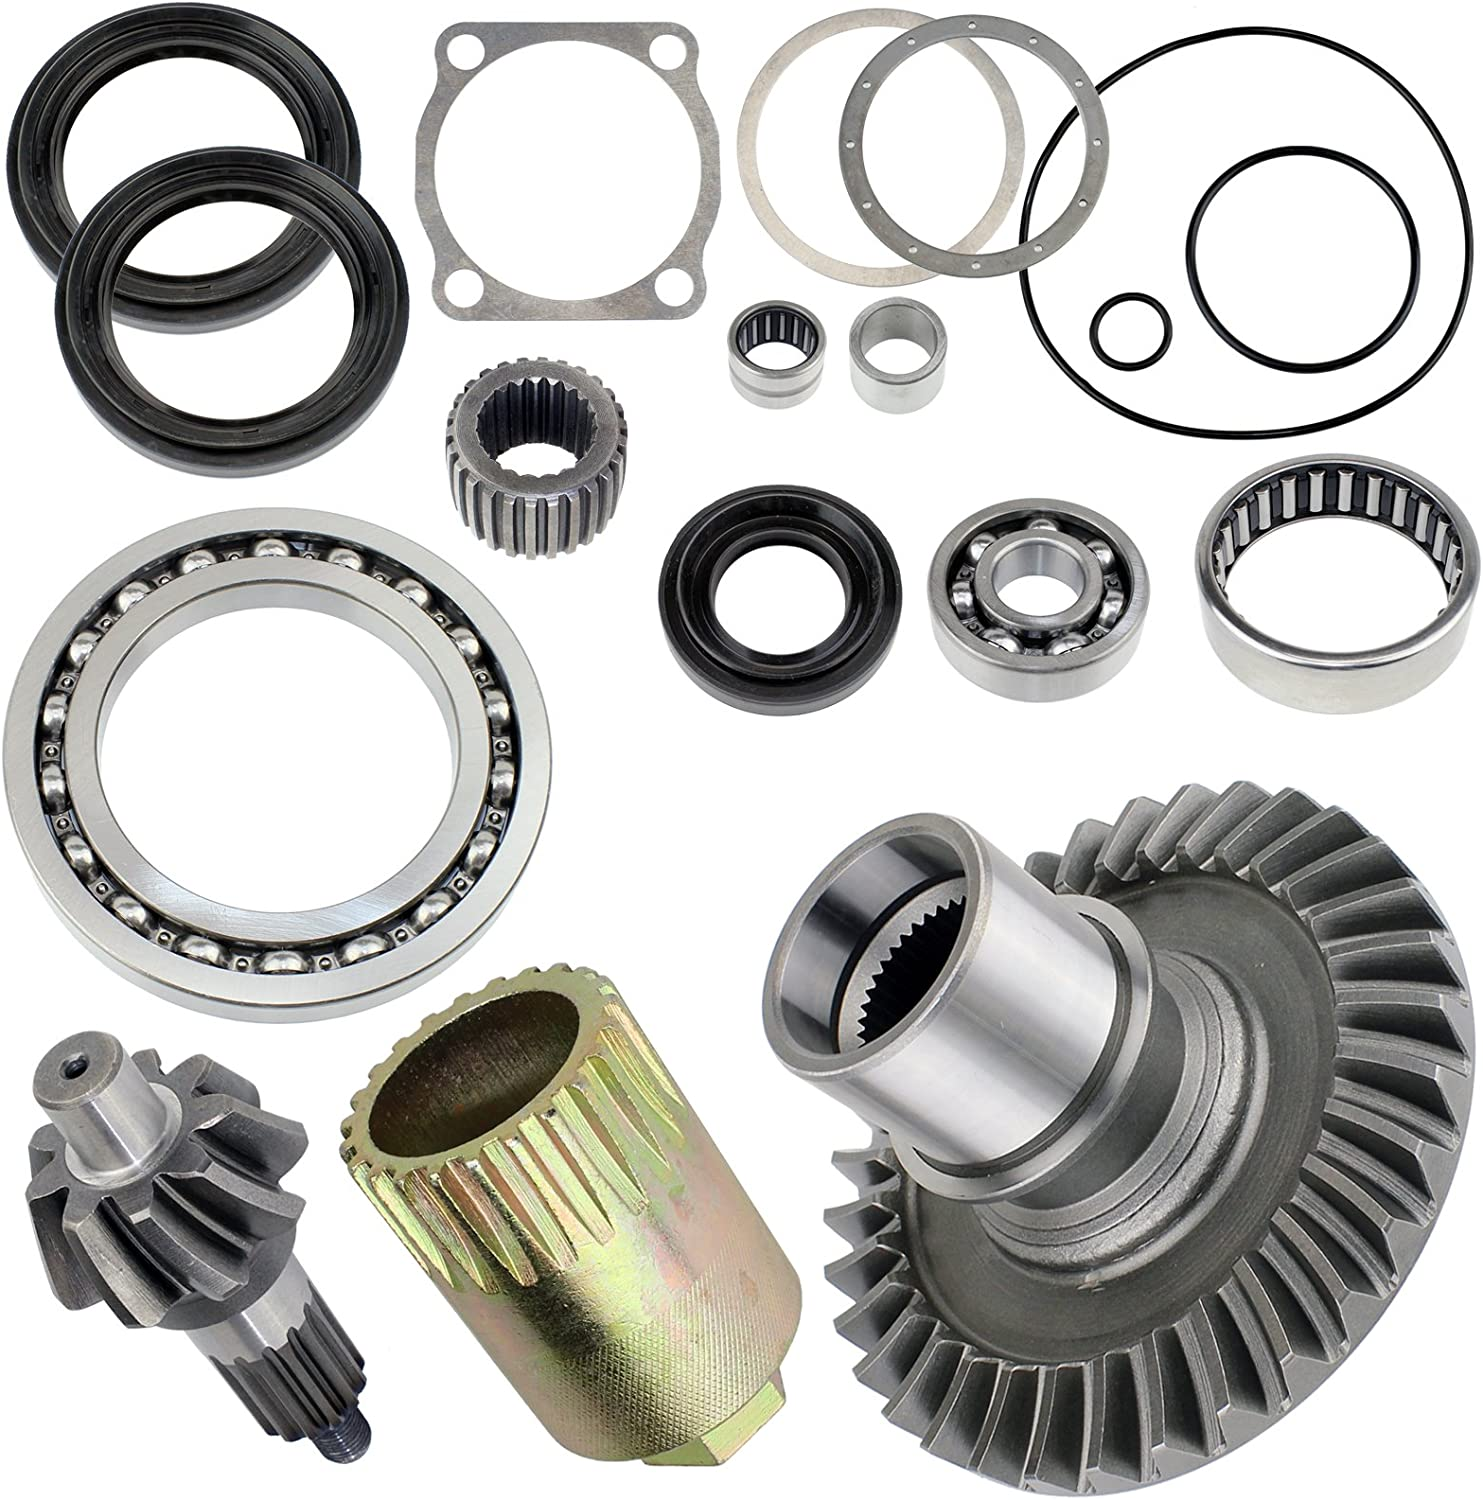 Caltric Complete Rear Differential Rebuild Kit for Yamaha Grizzly 660 Yfm660 2002-2008